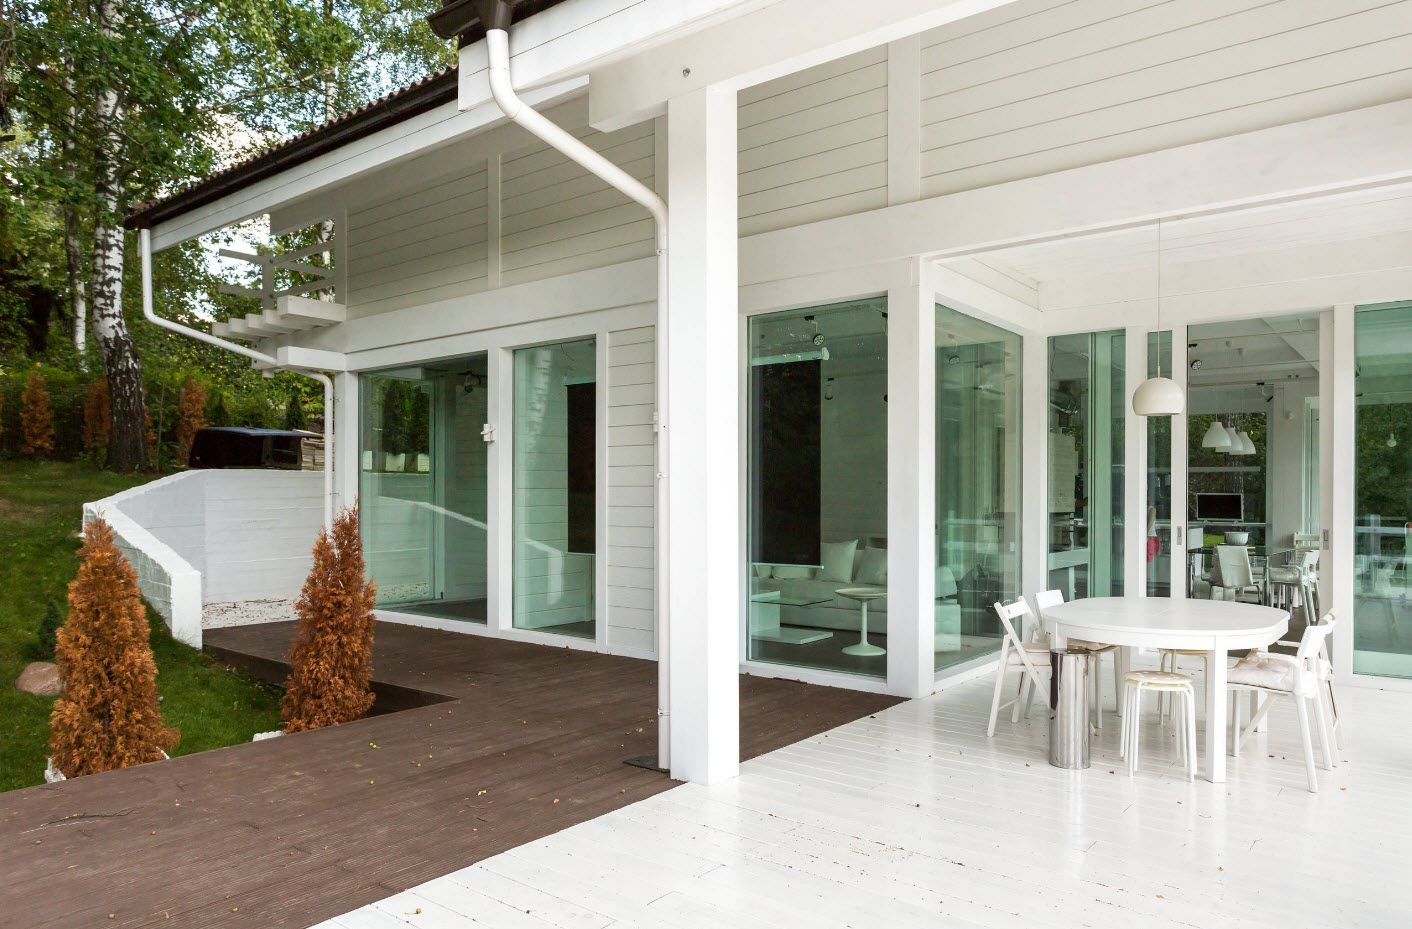 Spectacular white house facade, wooden pathway and glass panoramic windows